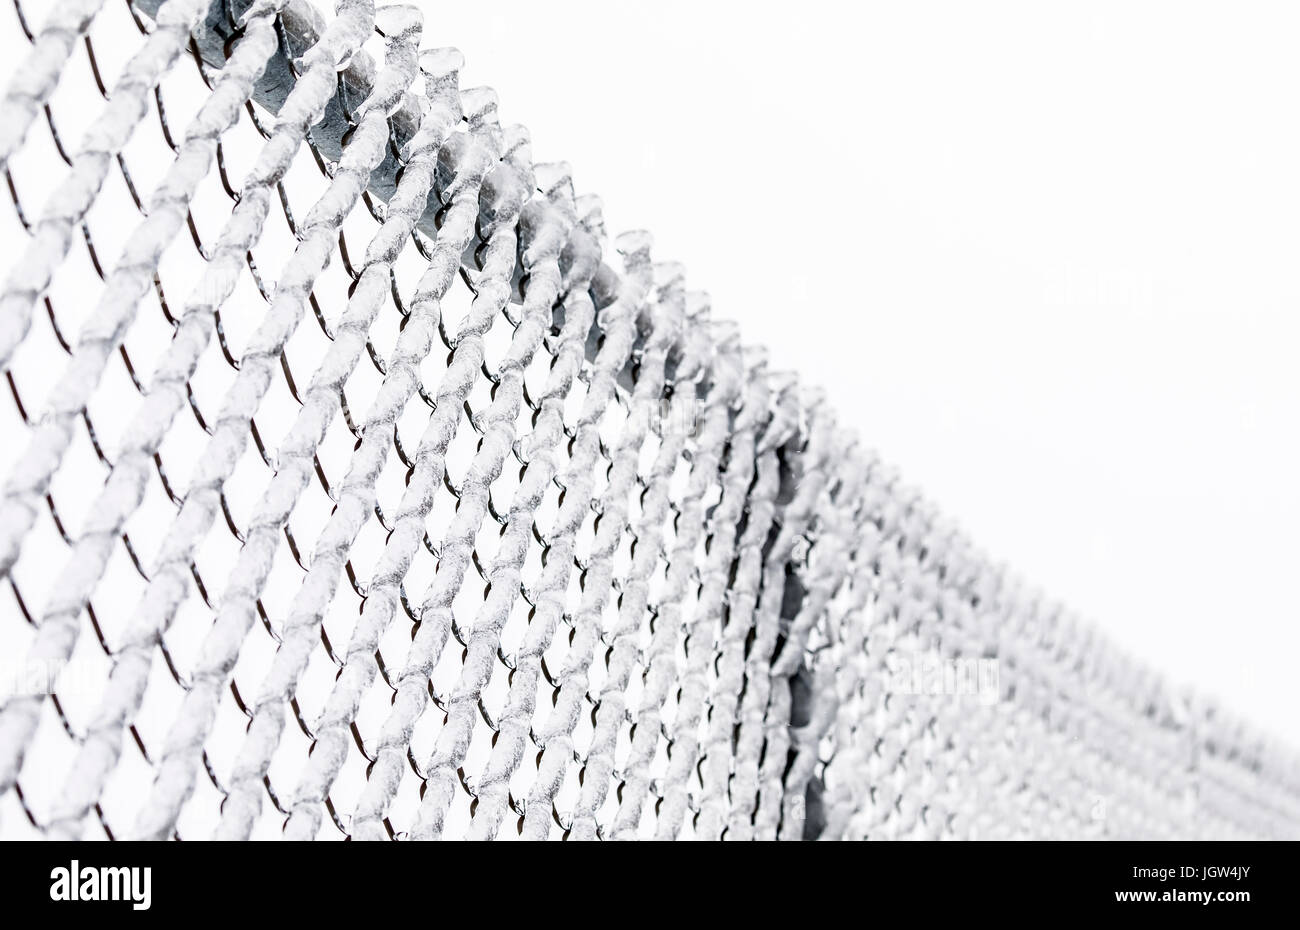 Chain-link fence covered in ice. - Stock Image